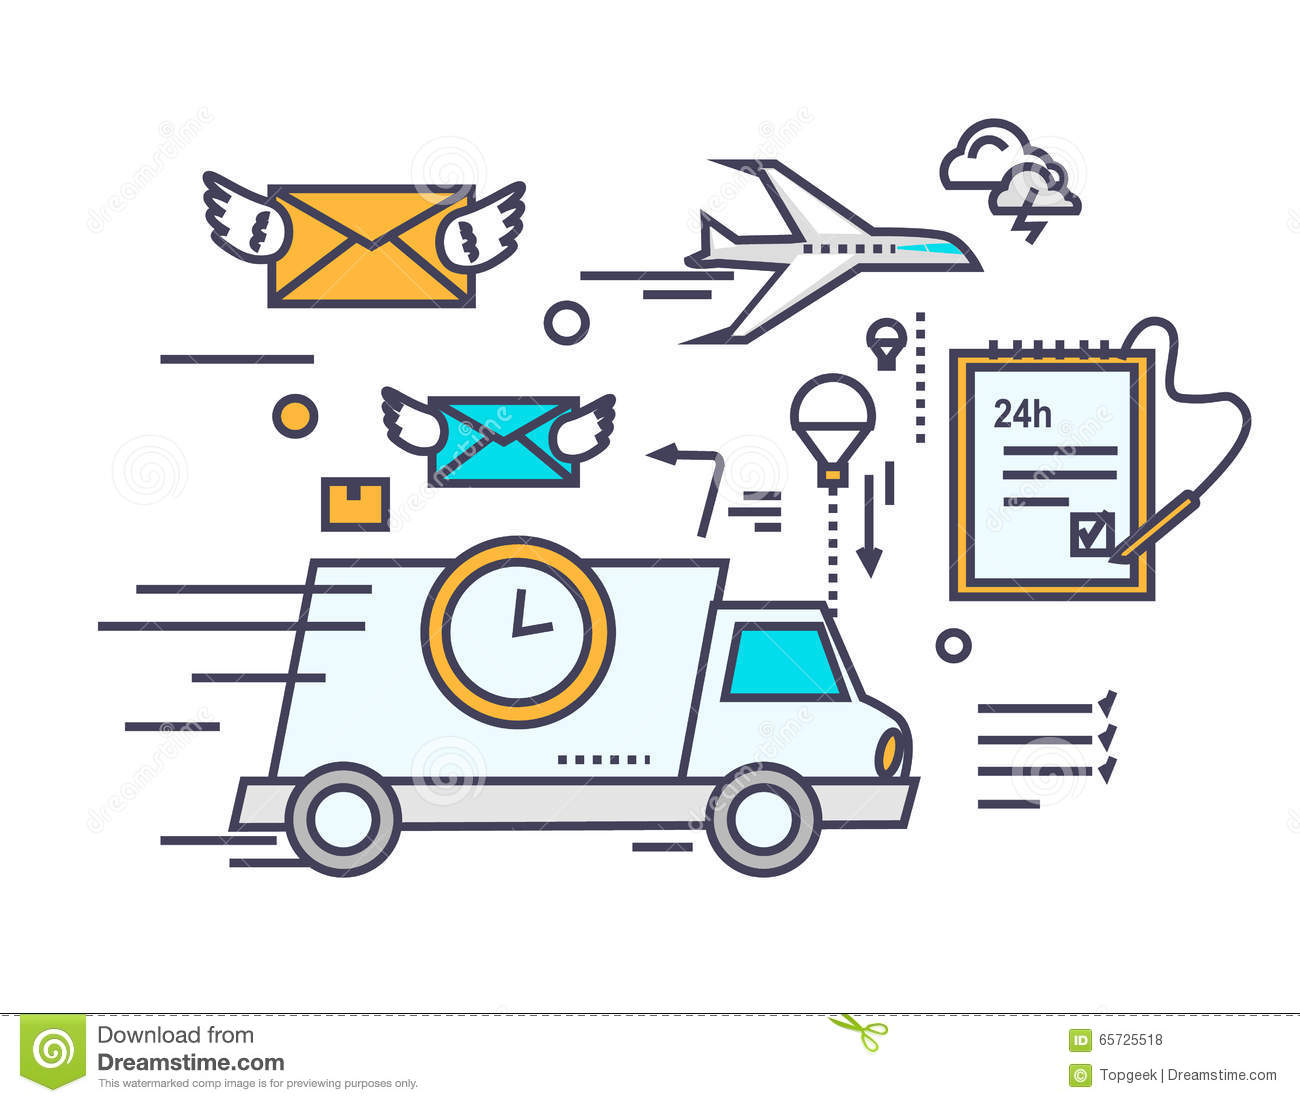 how to start a courier service business